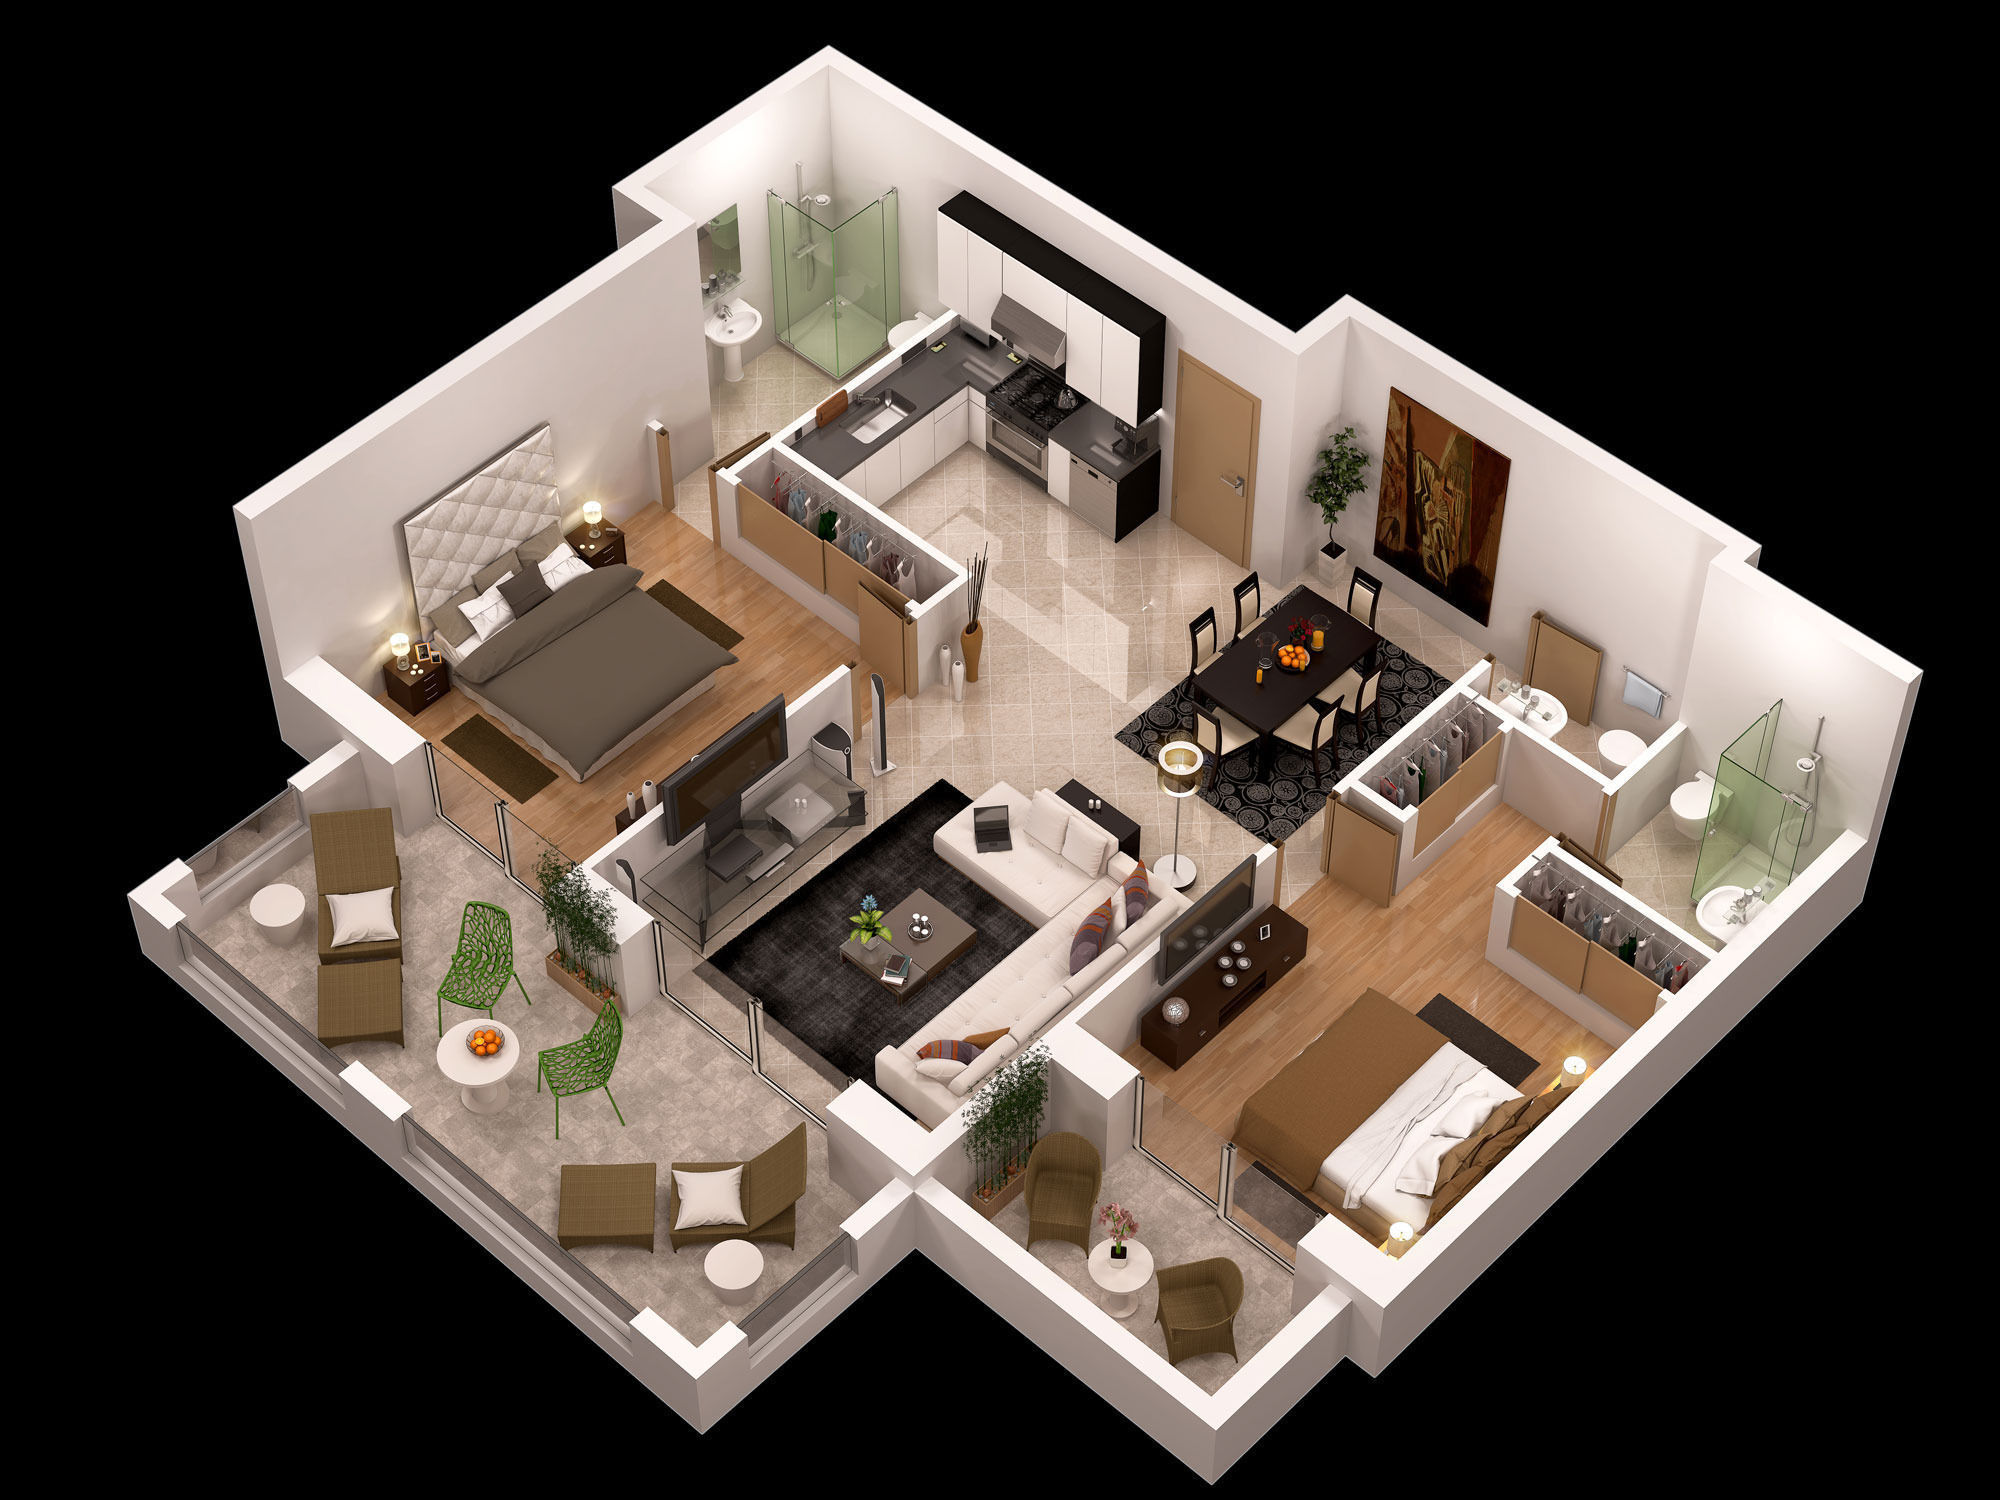 Detailed Floor Plan 3d 3d Model Max Obj Cgtrader Com